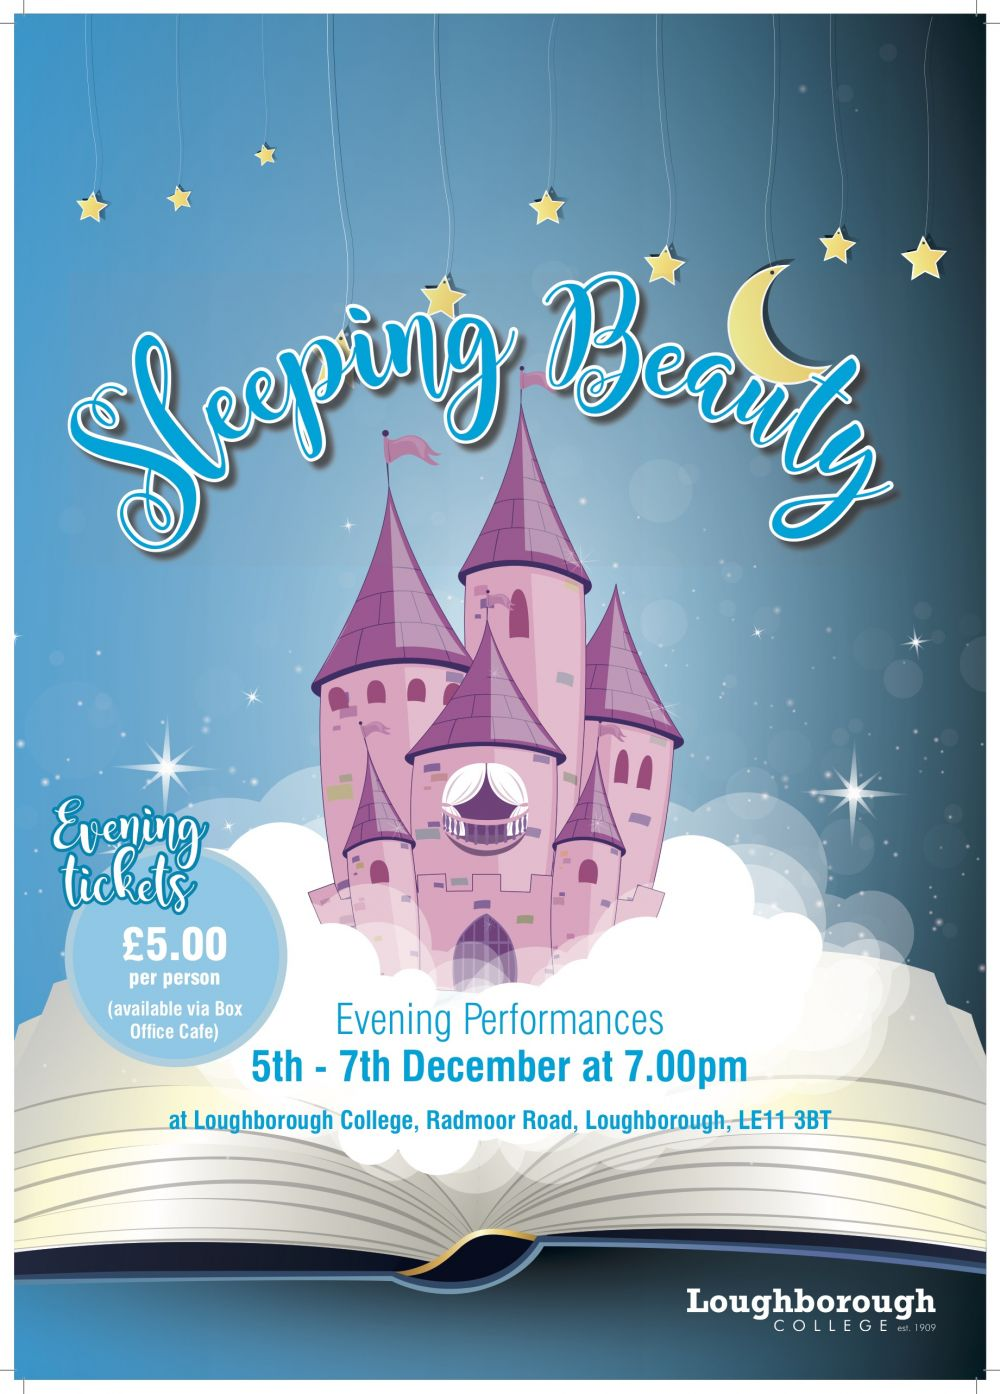 Panto set to delight with family fairytale favourite at Loughborough College